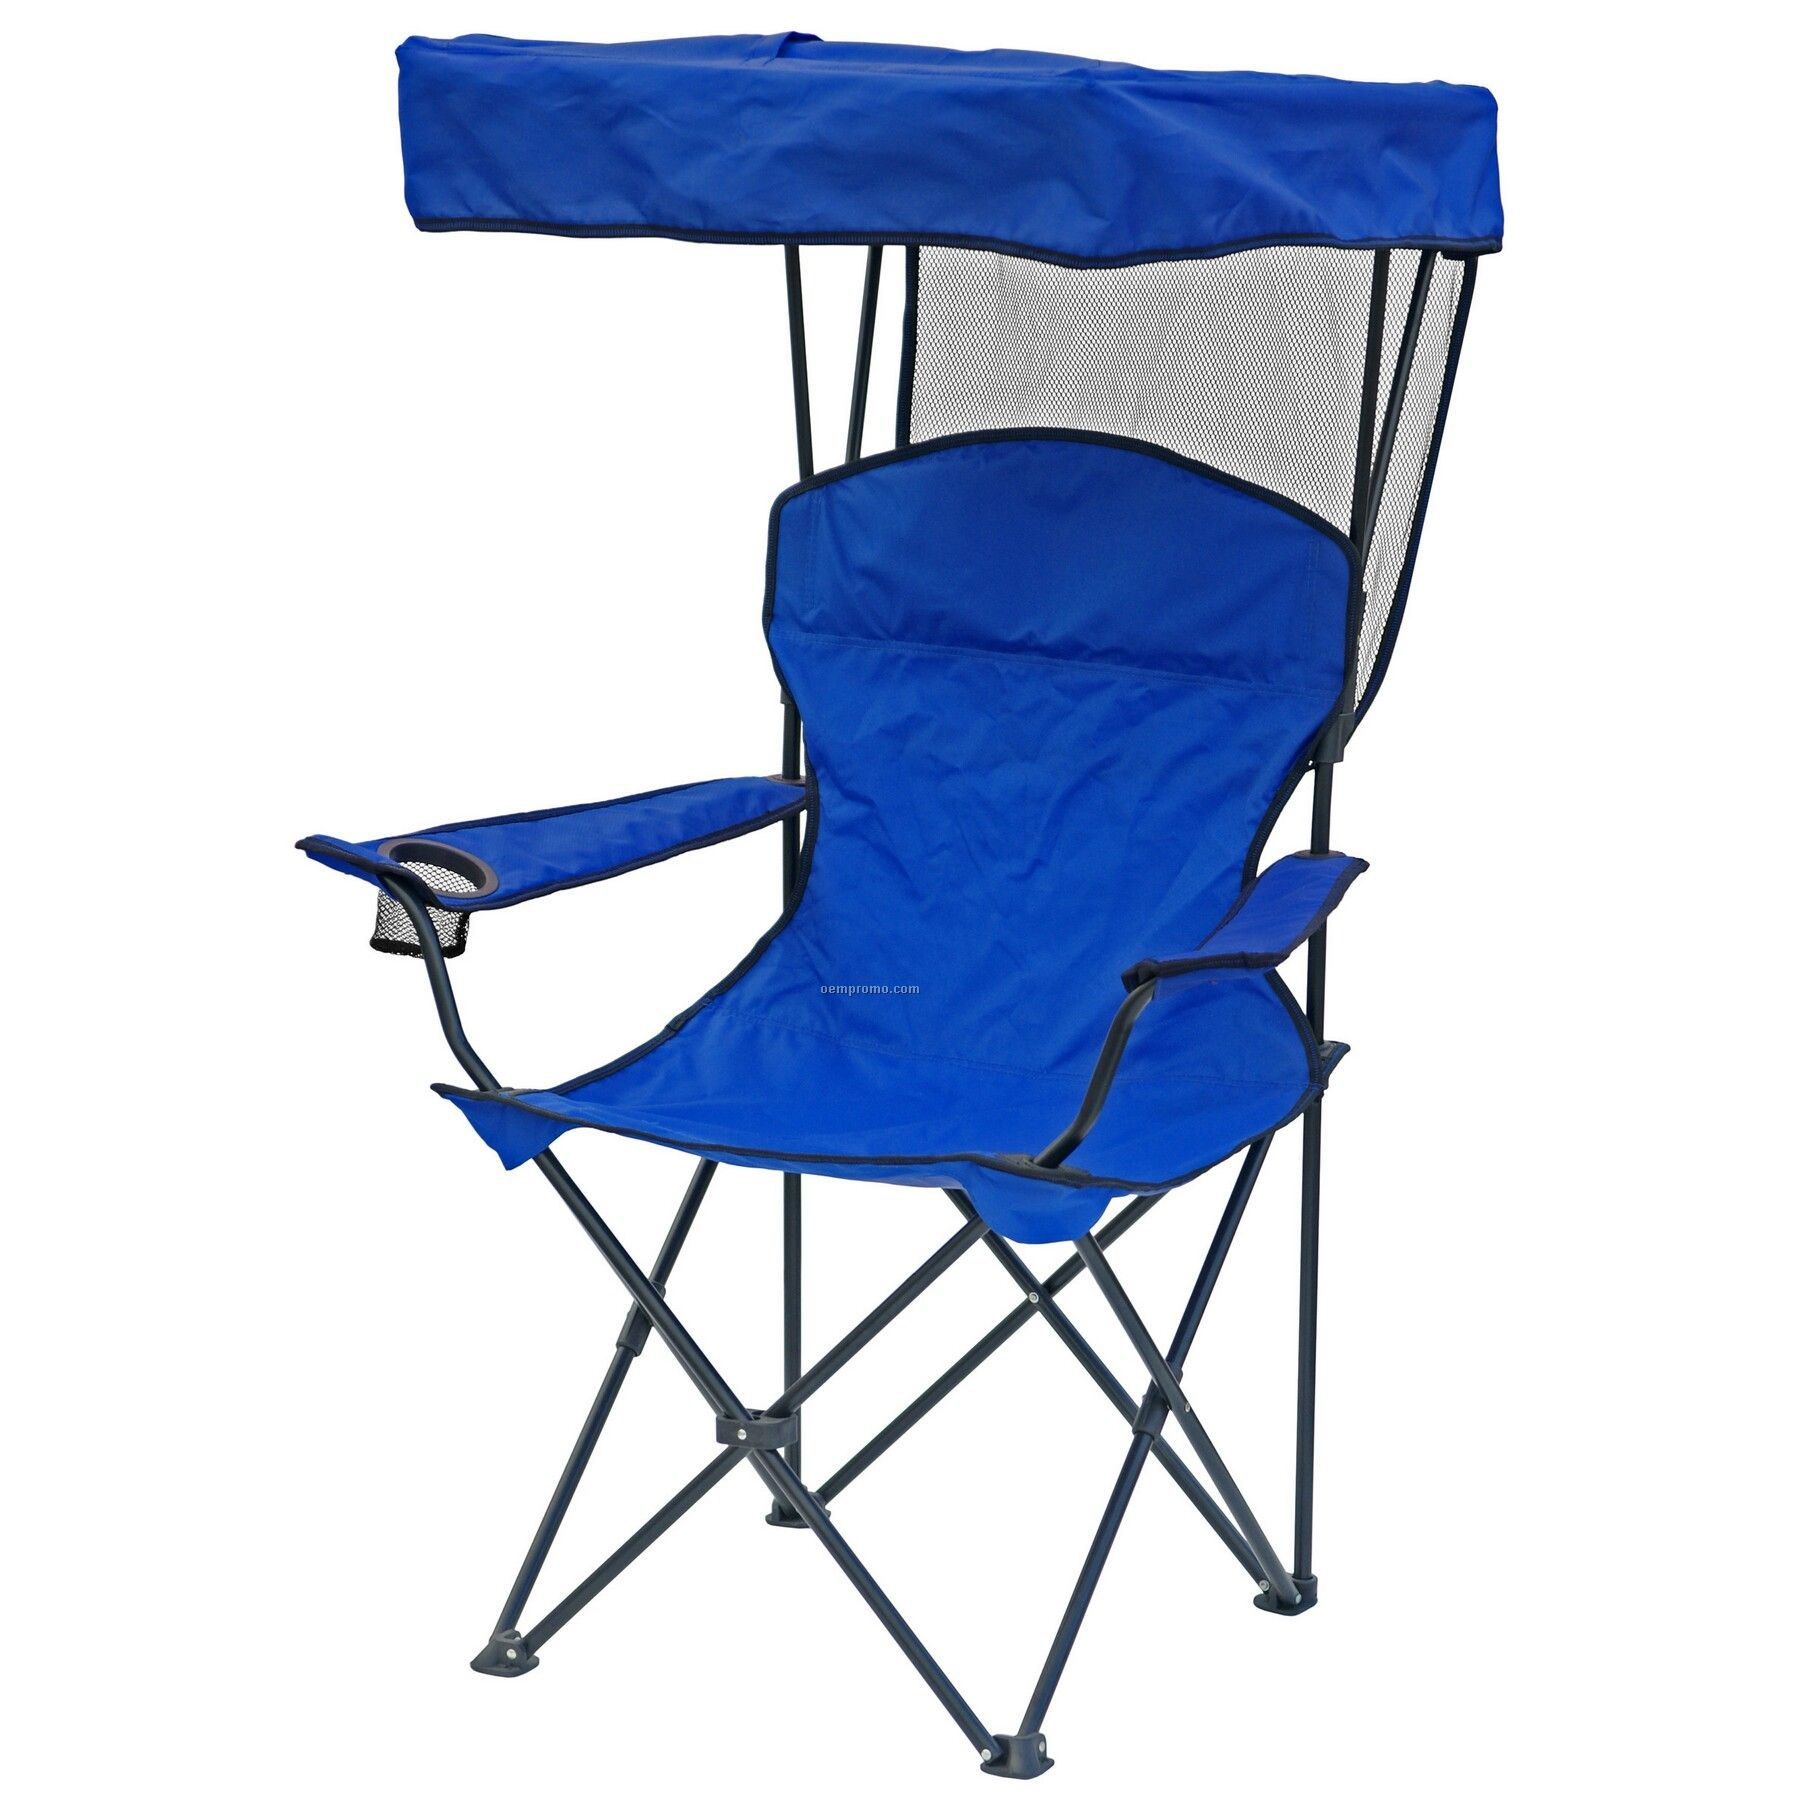 Fold Up Chair With Canopy Canopies Folding Canopy